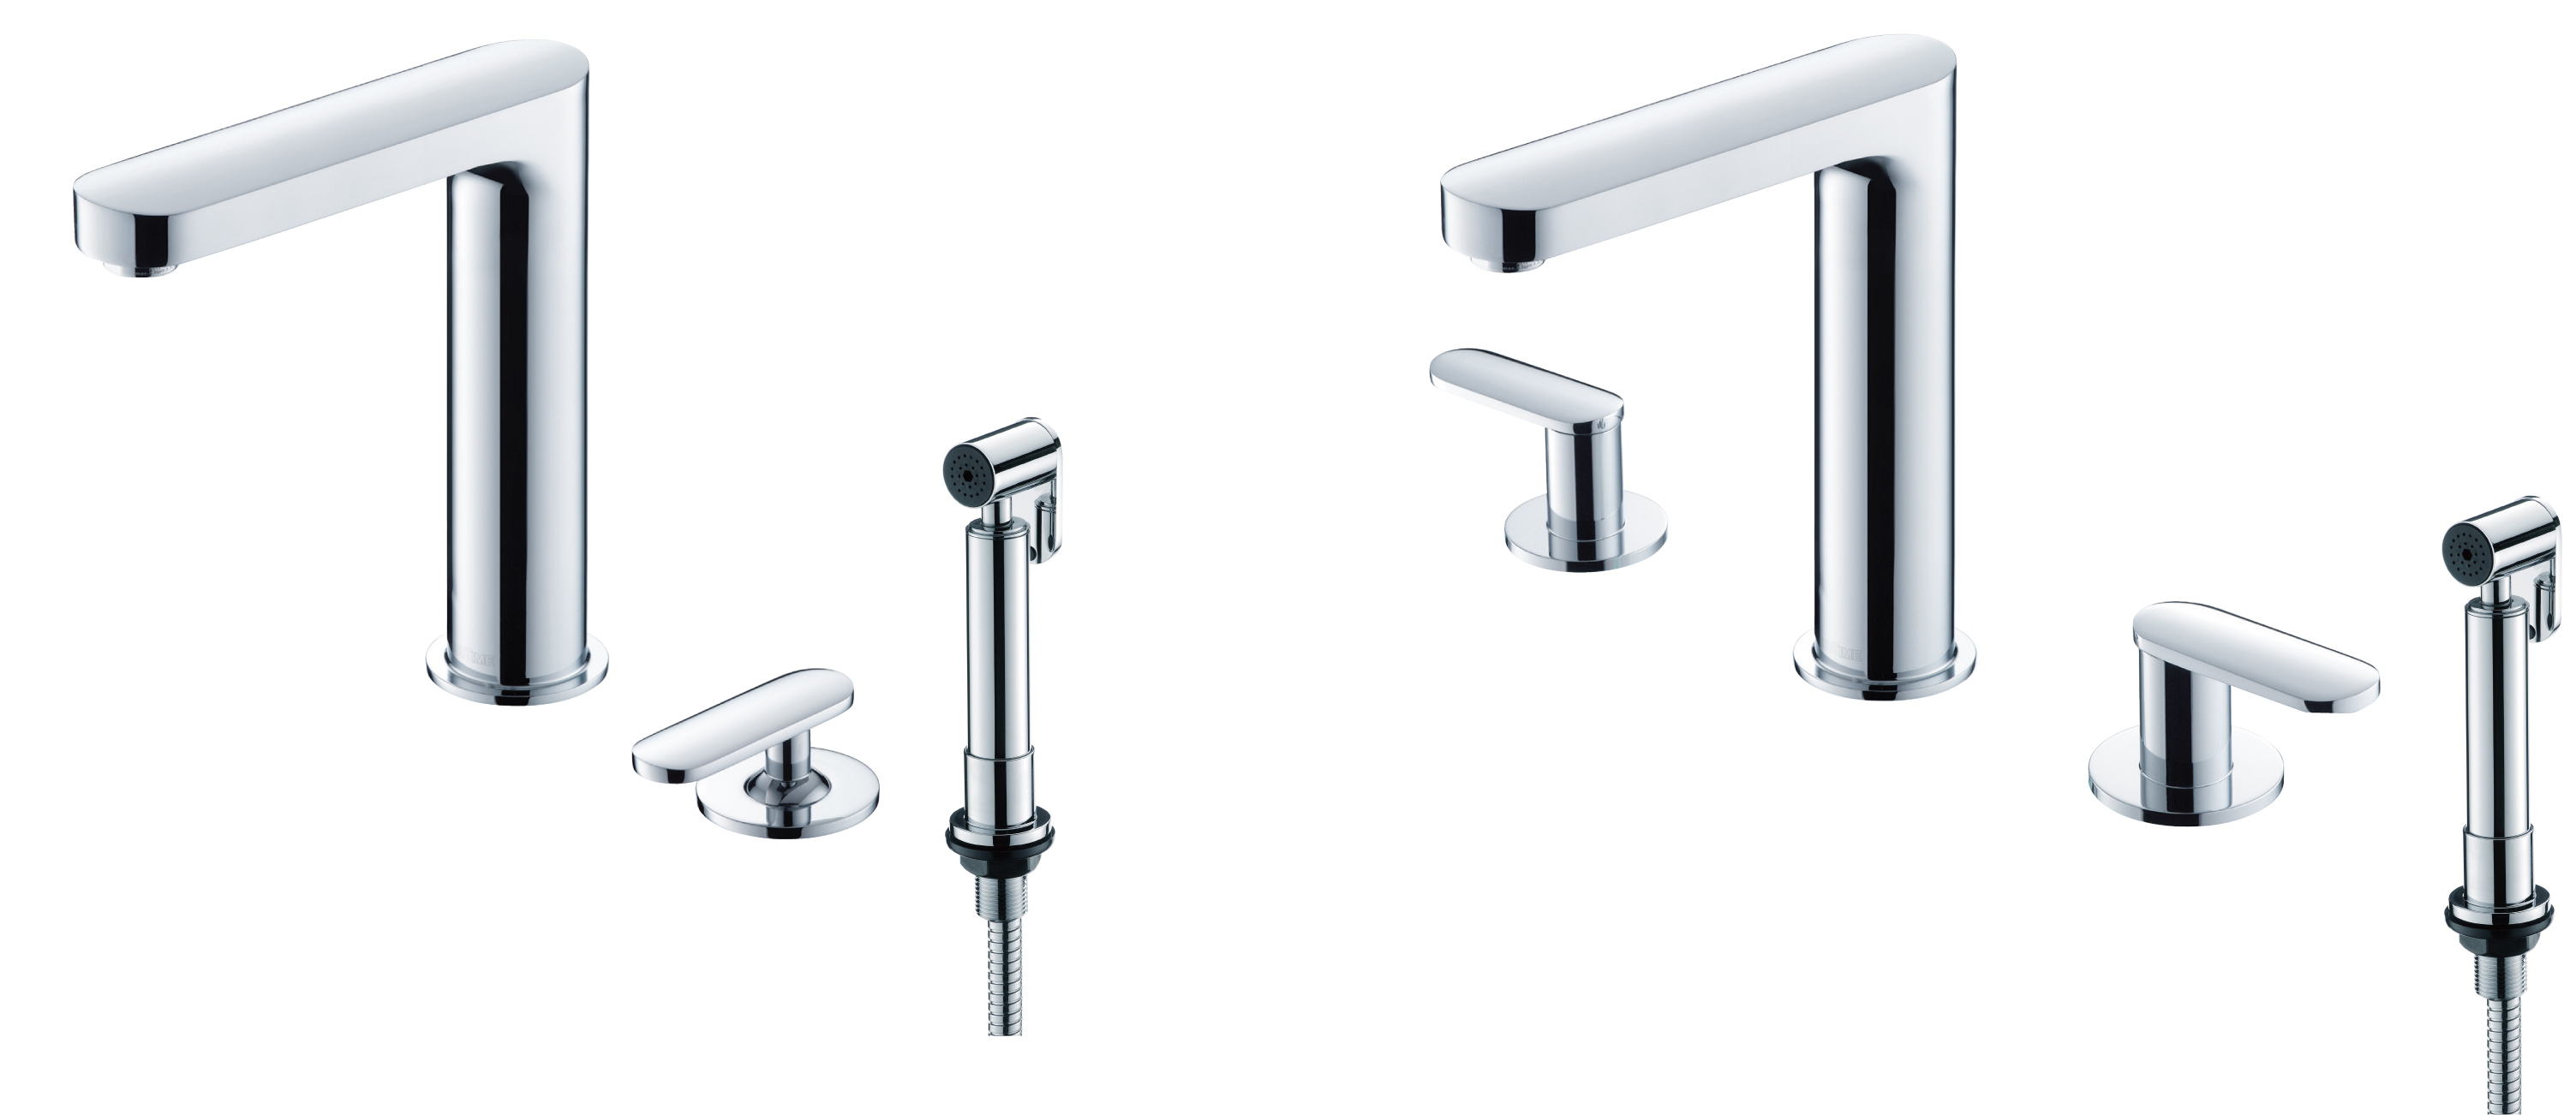 Charming Series Kitchen Faucet